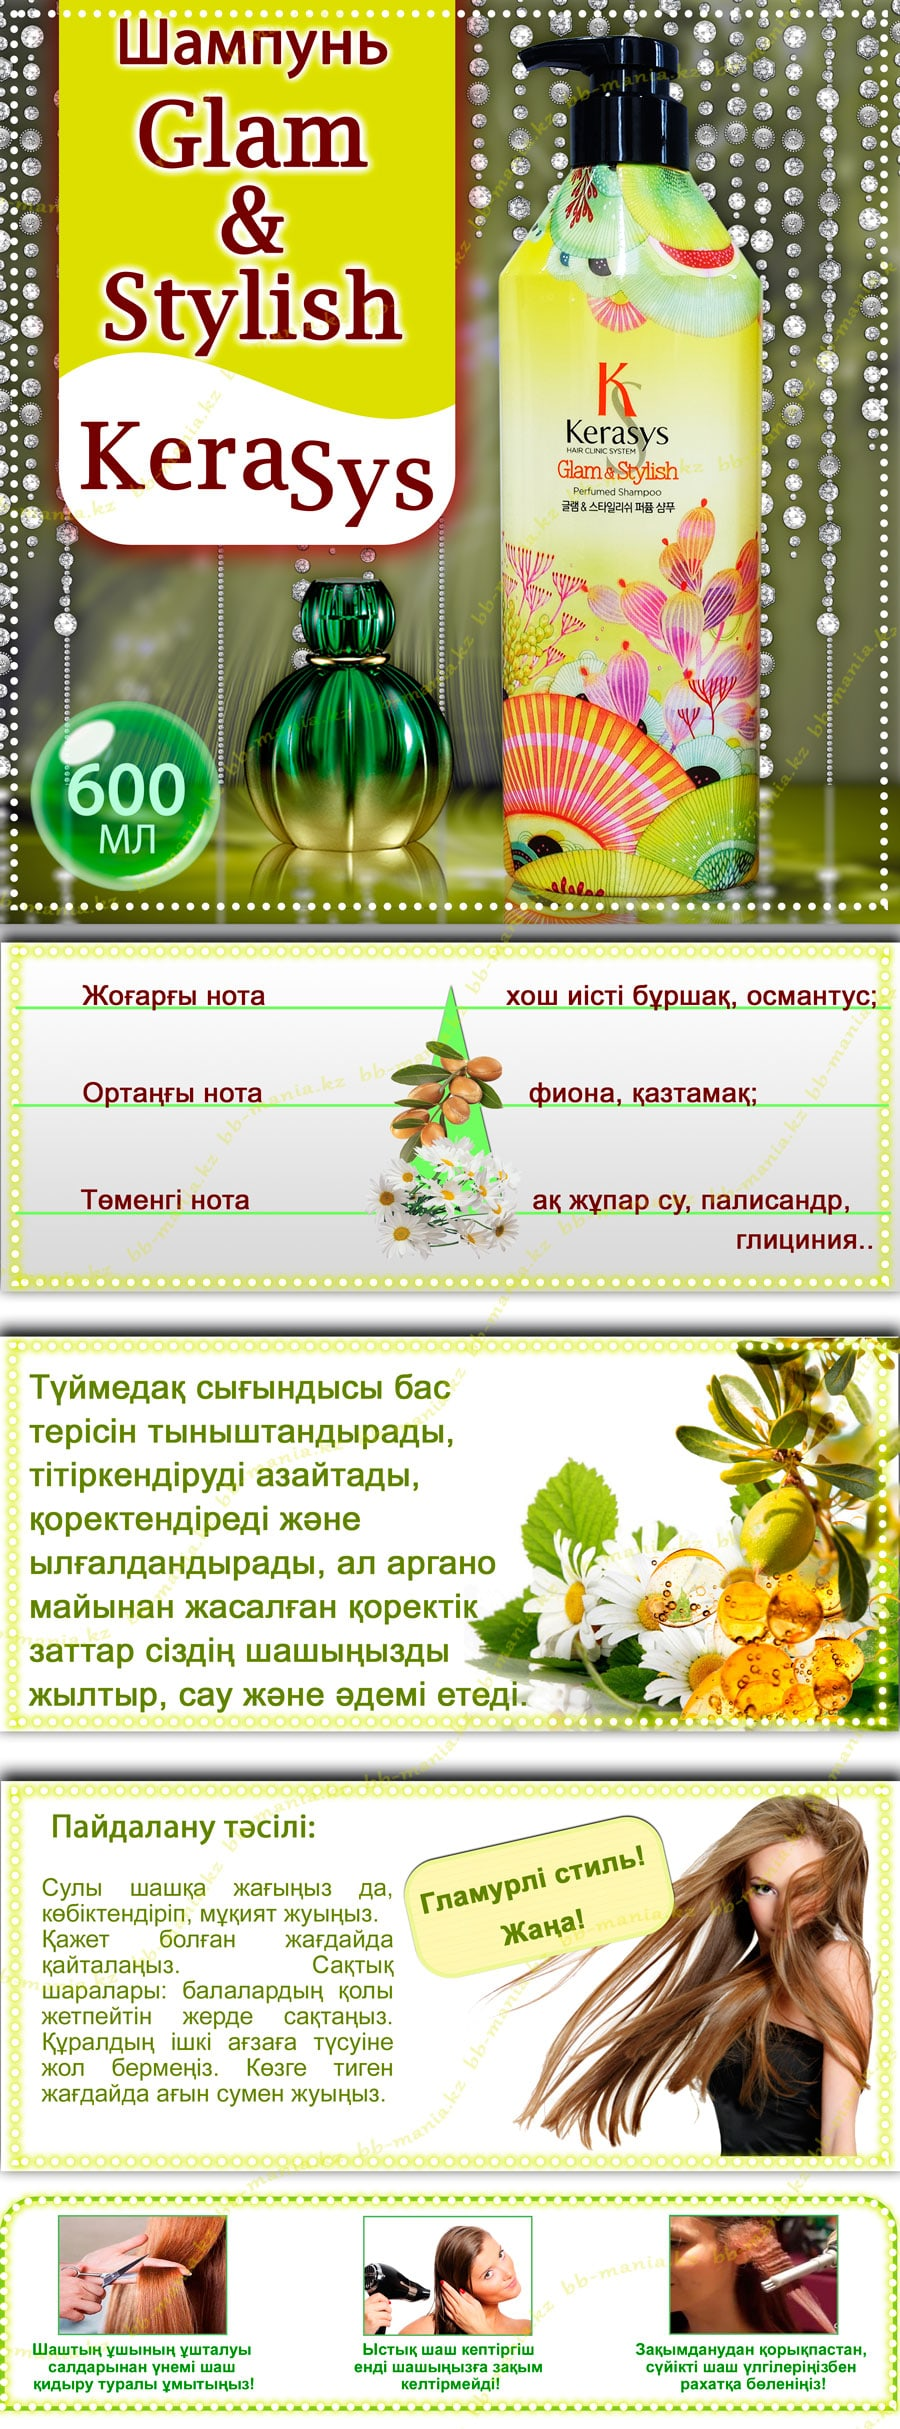 Kerasys-Glam-&-Stylish-Perfumed-Shampoo кз-min